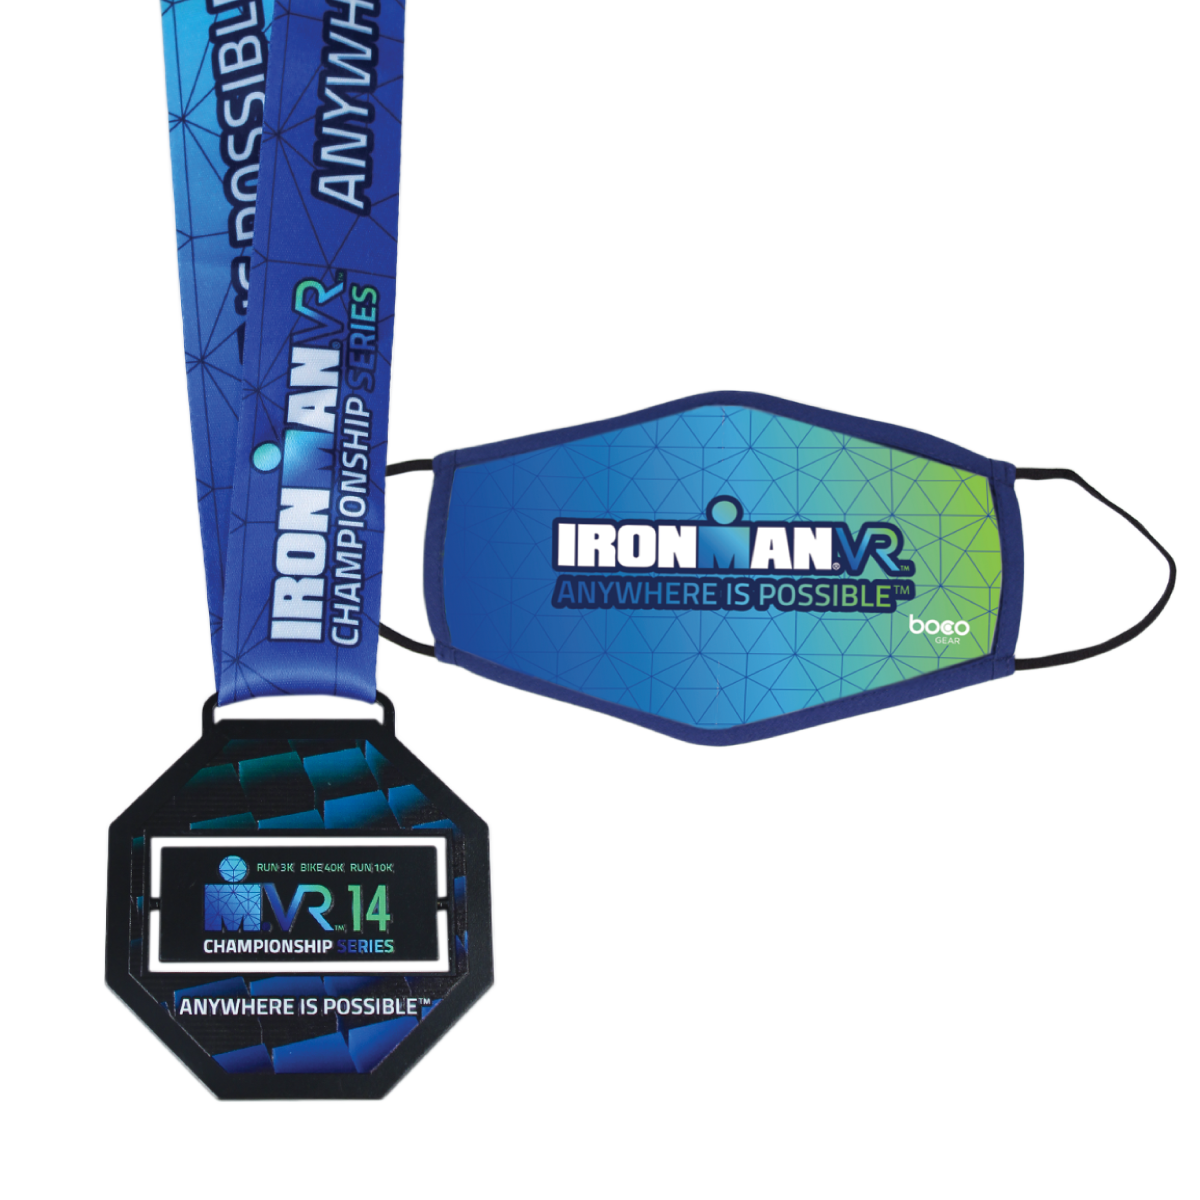 IRONMAN VR14 CHAMPIONSHIP SERIES FINISHER MEDAL